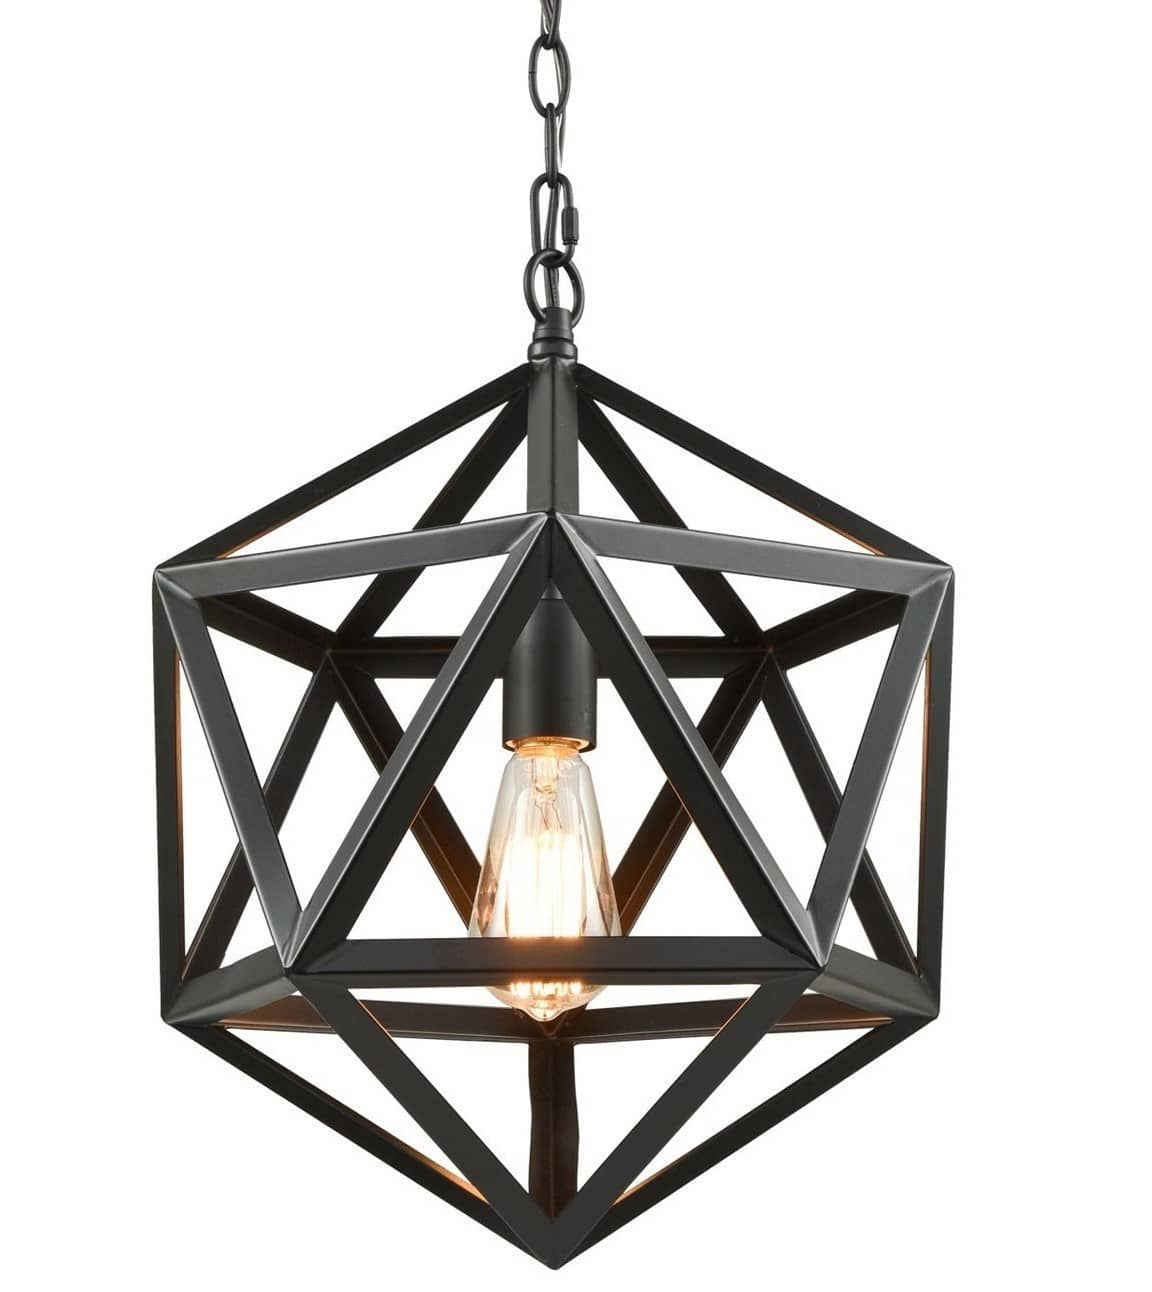 13_industrial chandelier